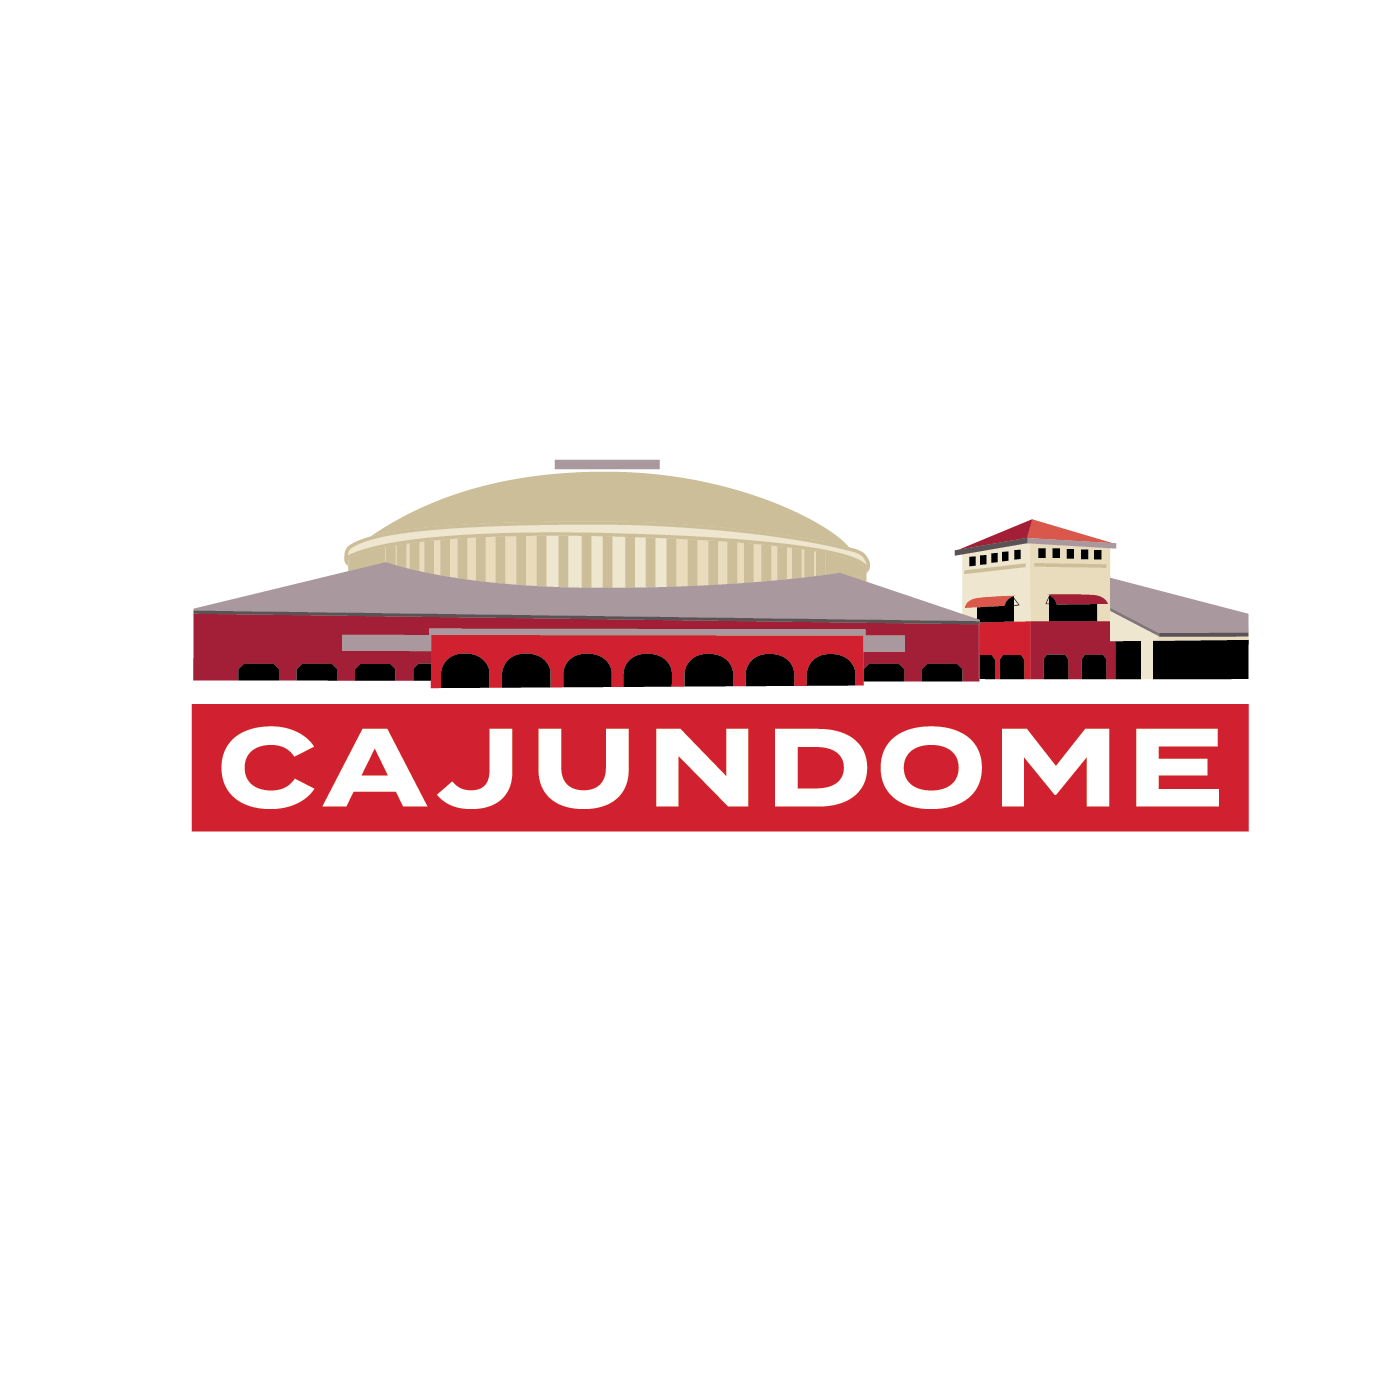 Cajundome_DARKbackground_REDbar_NOoutline_RGB.png